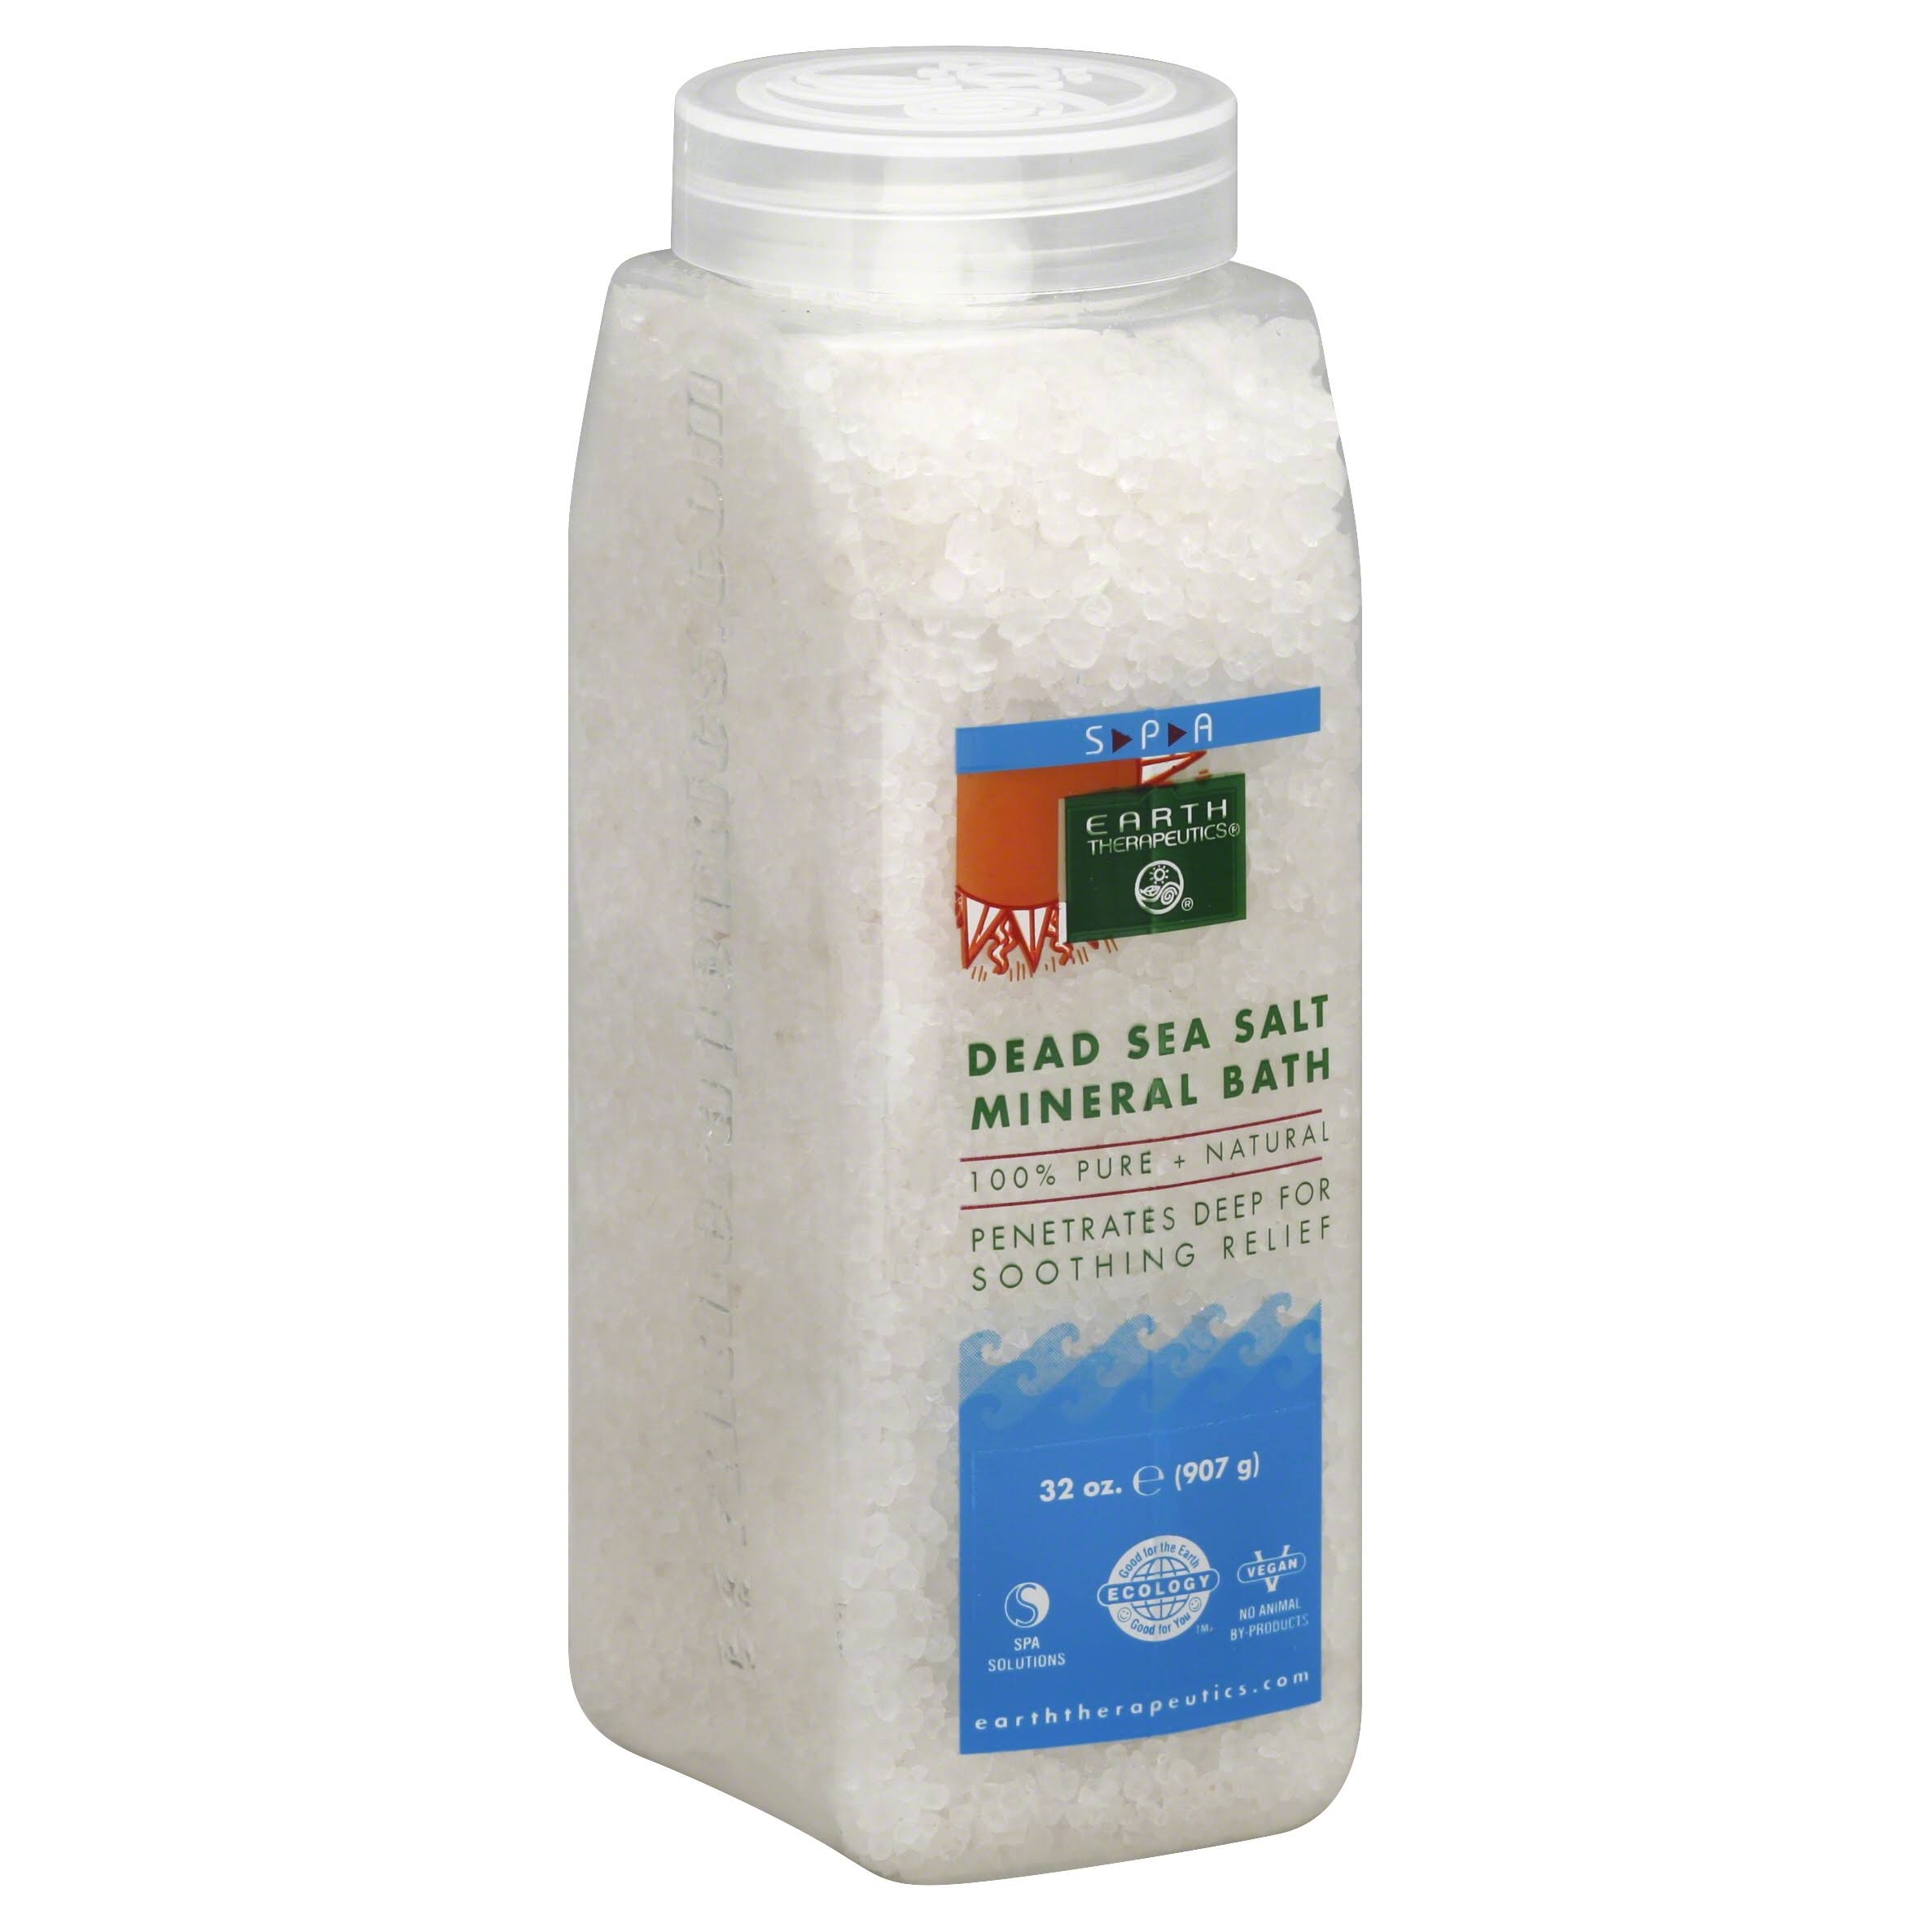 Earth Therapeutics Dead Sea Salt Mineral Bath - 907g